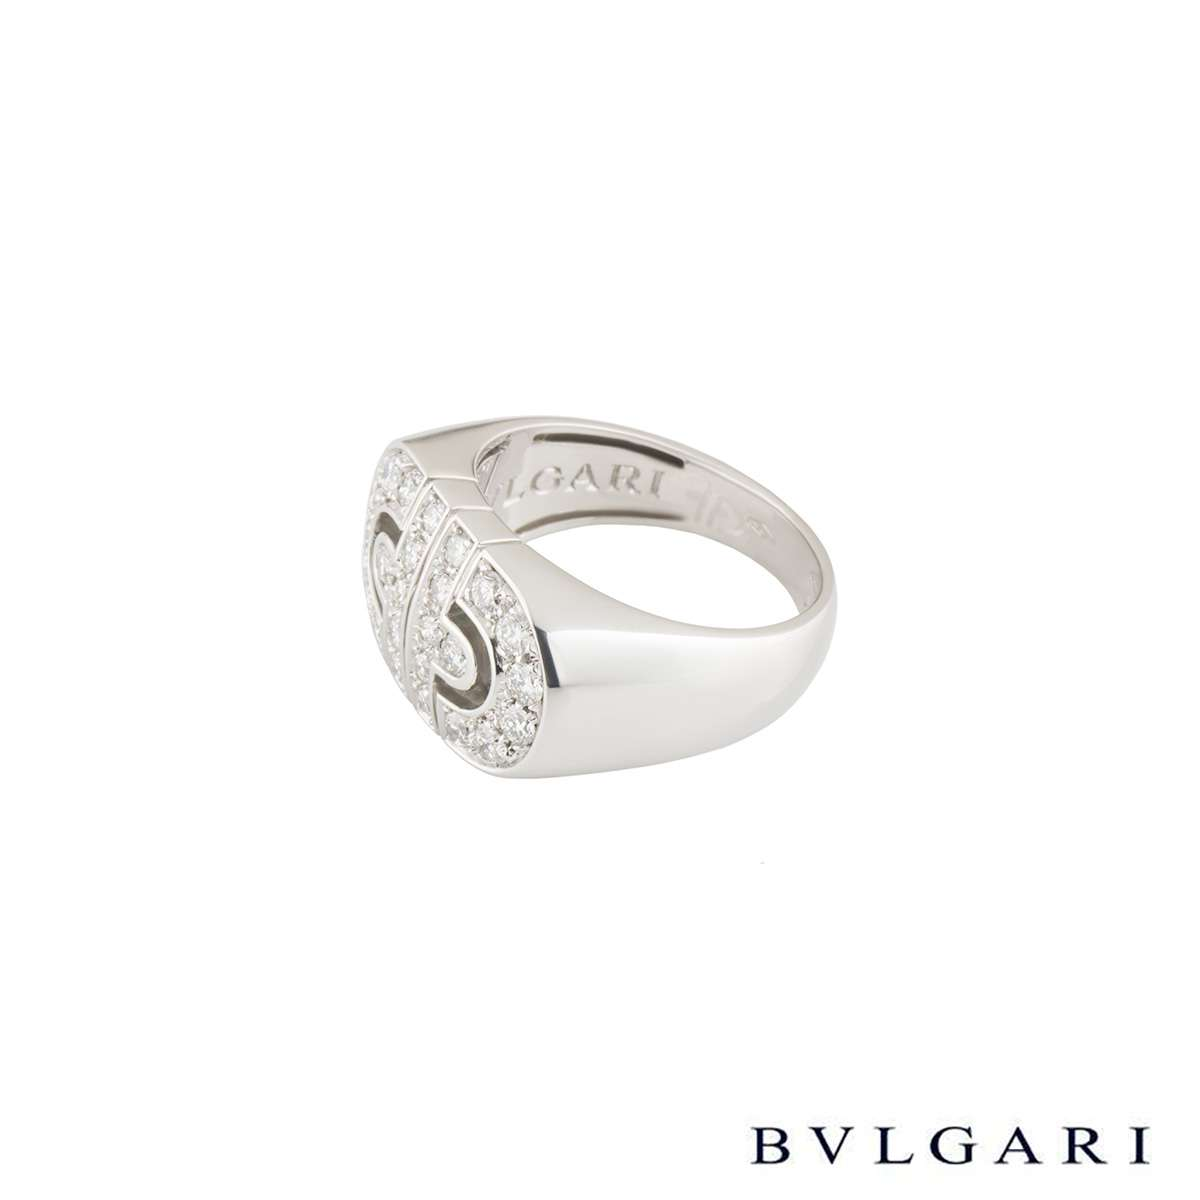 Bvlgari White Gold Diamond Parentesi Ring Size 51 AN853699